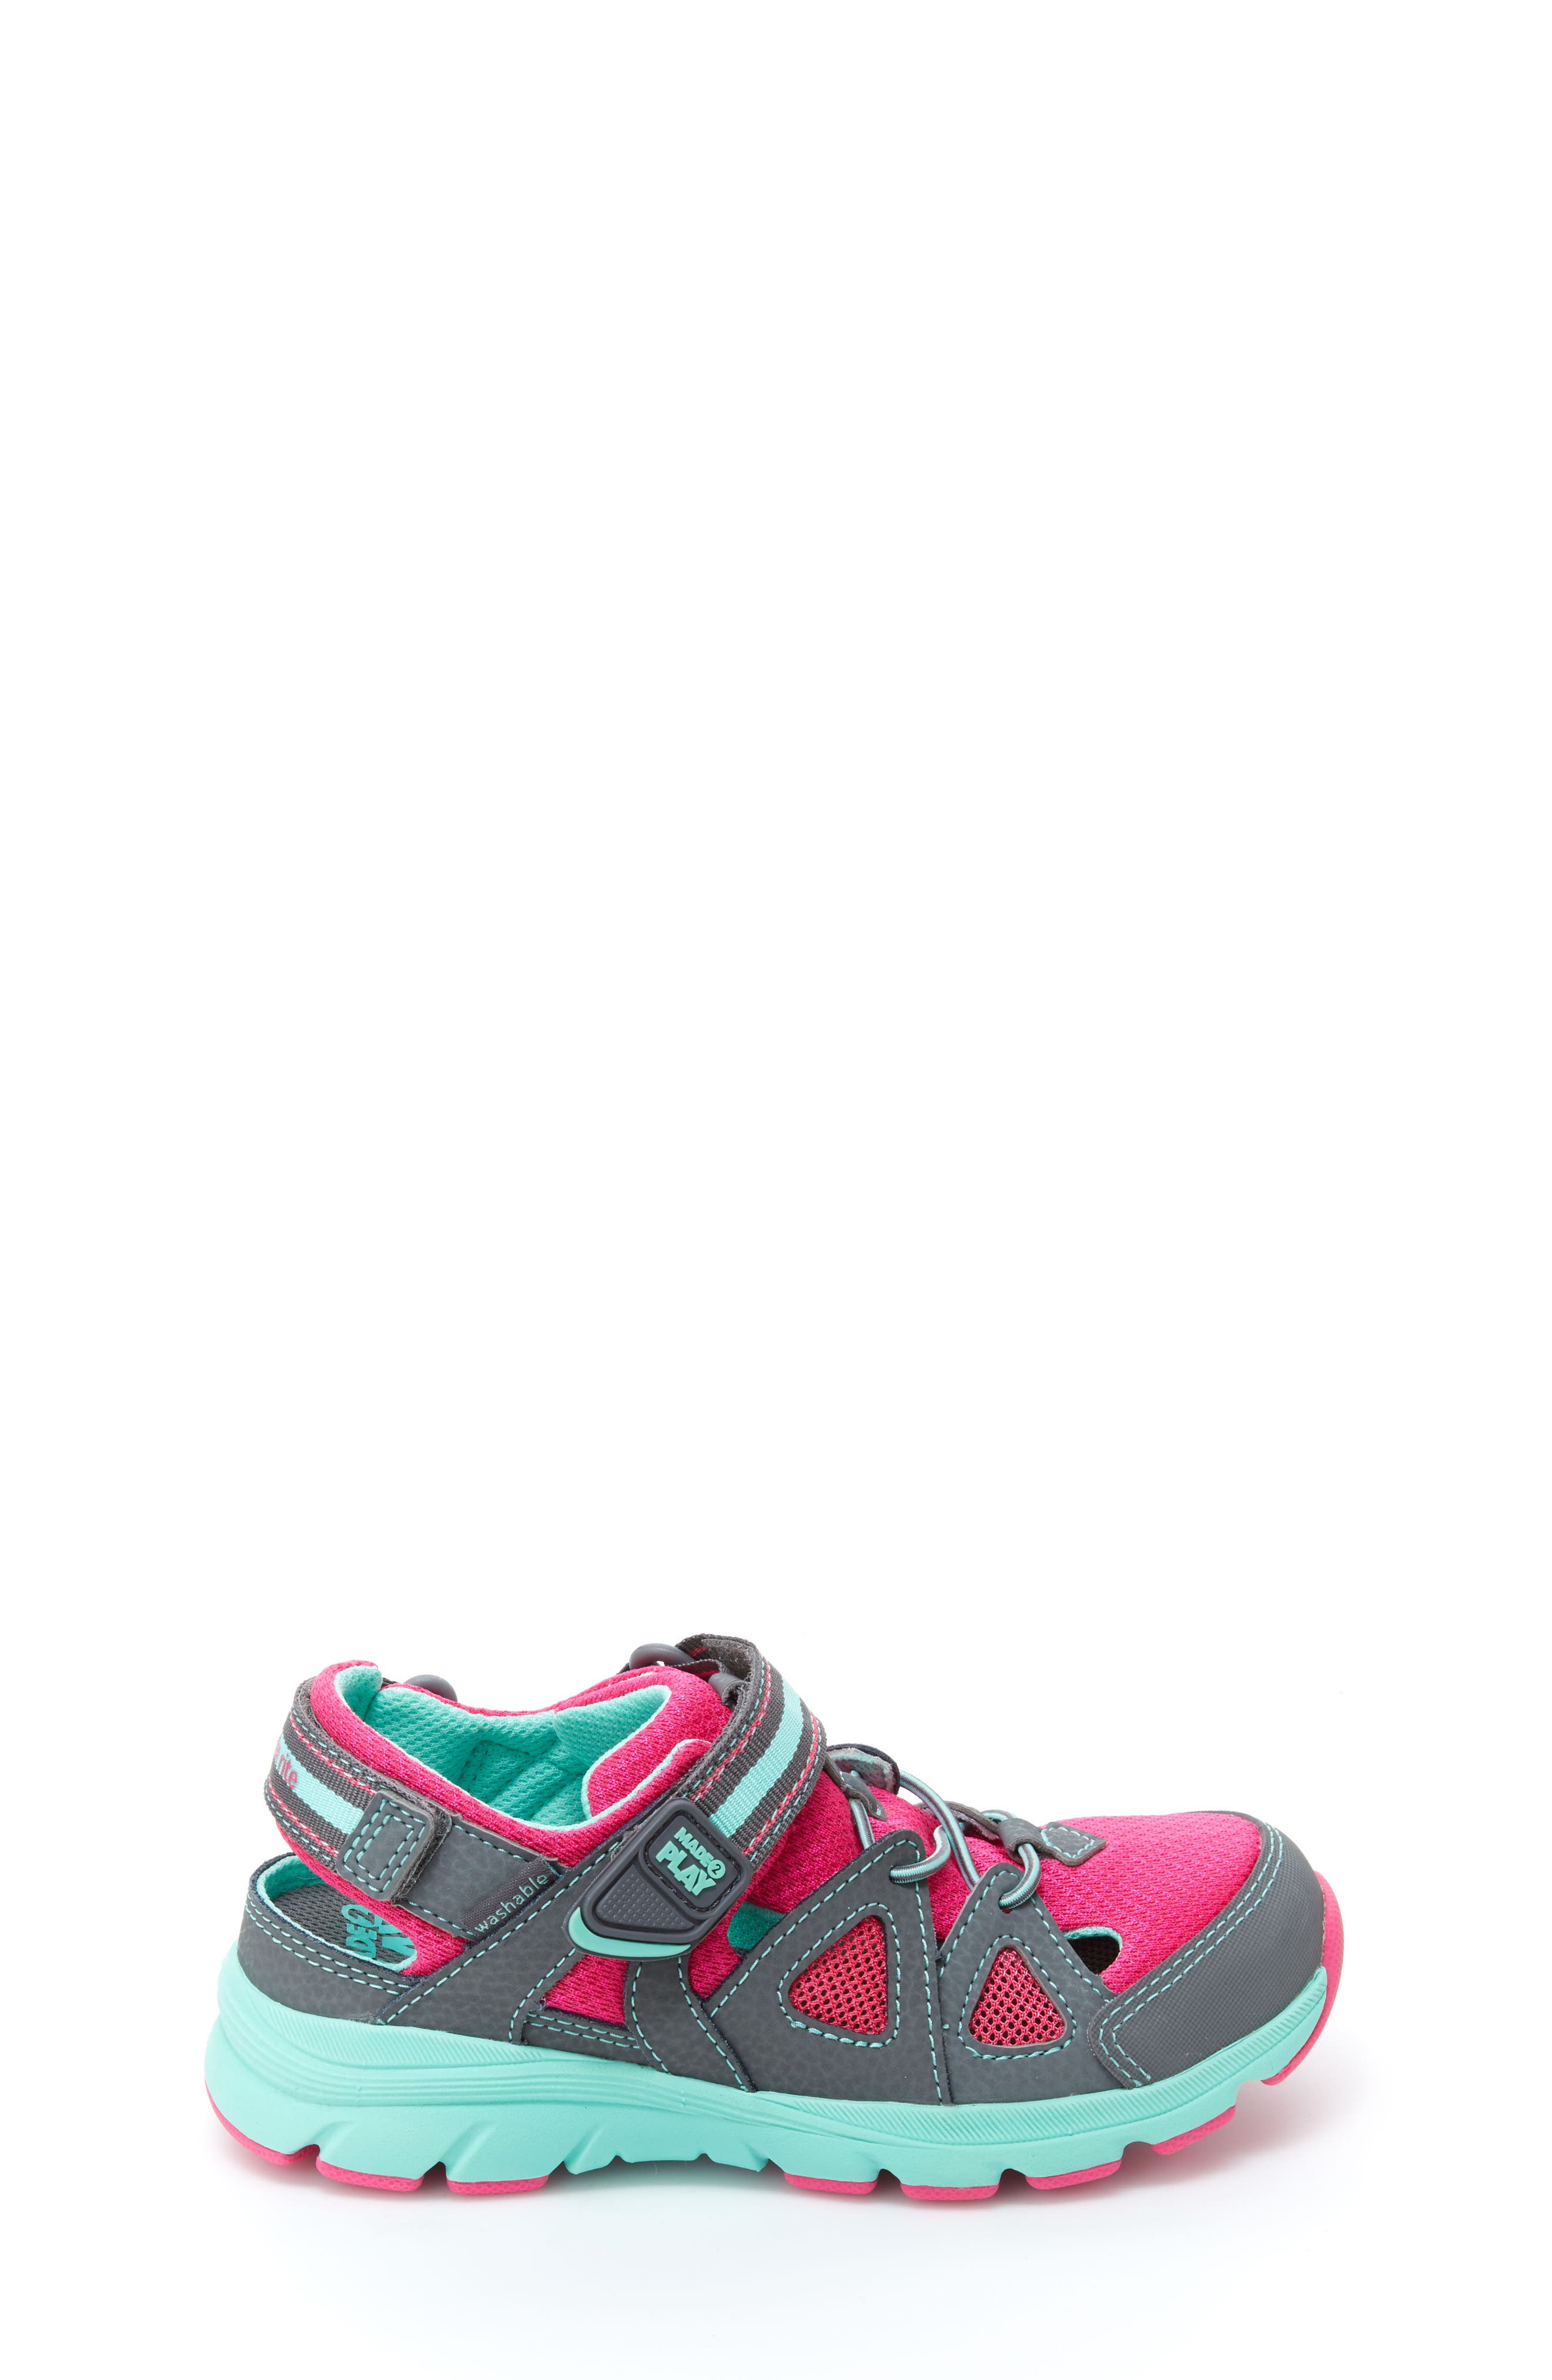 Made2Play<sup>®</sup> Ryder Washable Sneaker,                             Alternate thumbnail 3, color,                             020